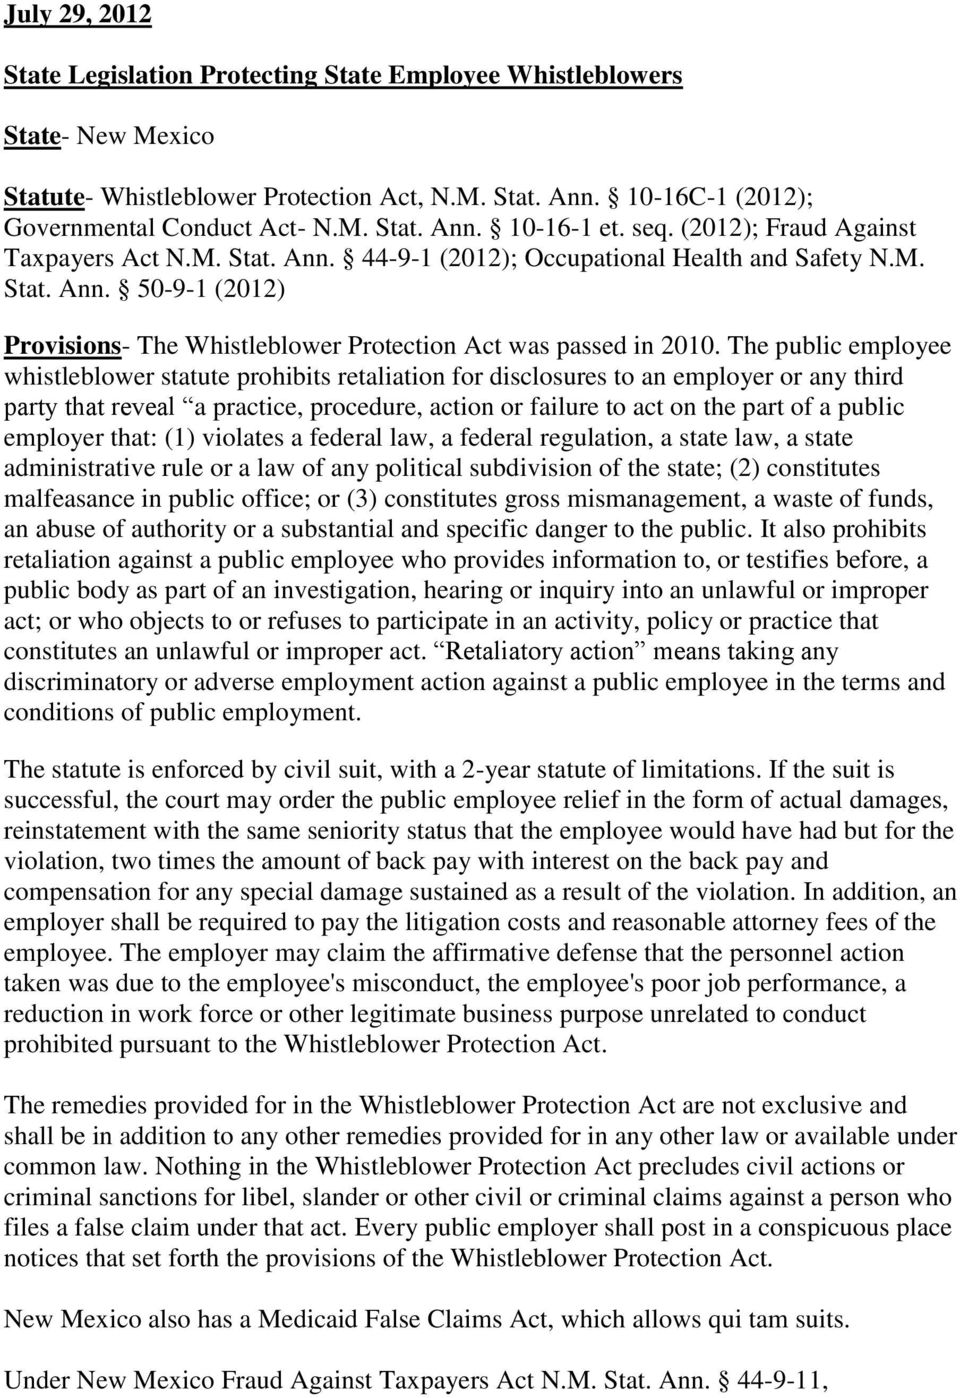 The public employee whistleblower statute prohibits retaliation for disclosures to an employer or any third party that reveal a practice, procedure, action or failure to act on the part of a public